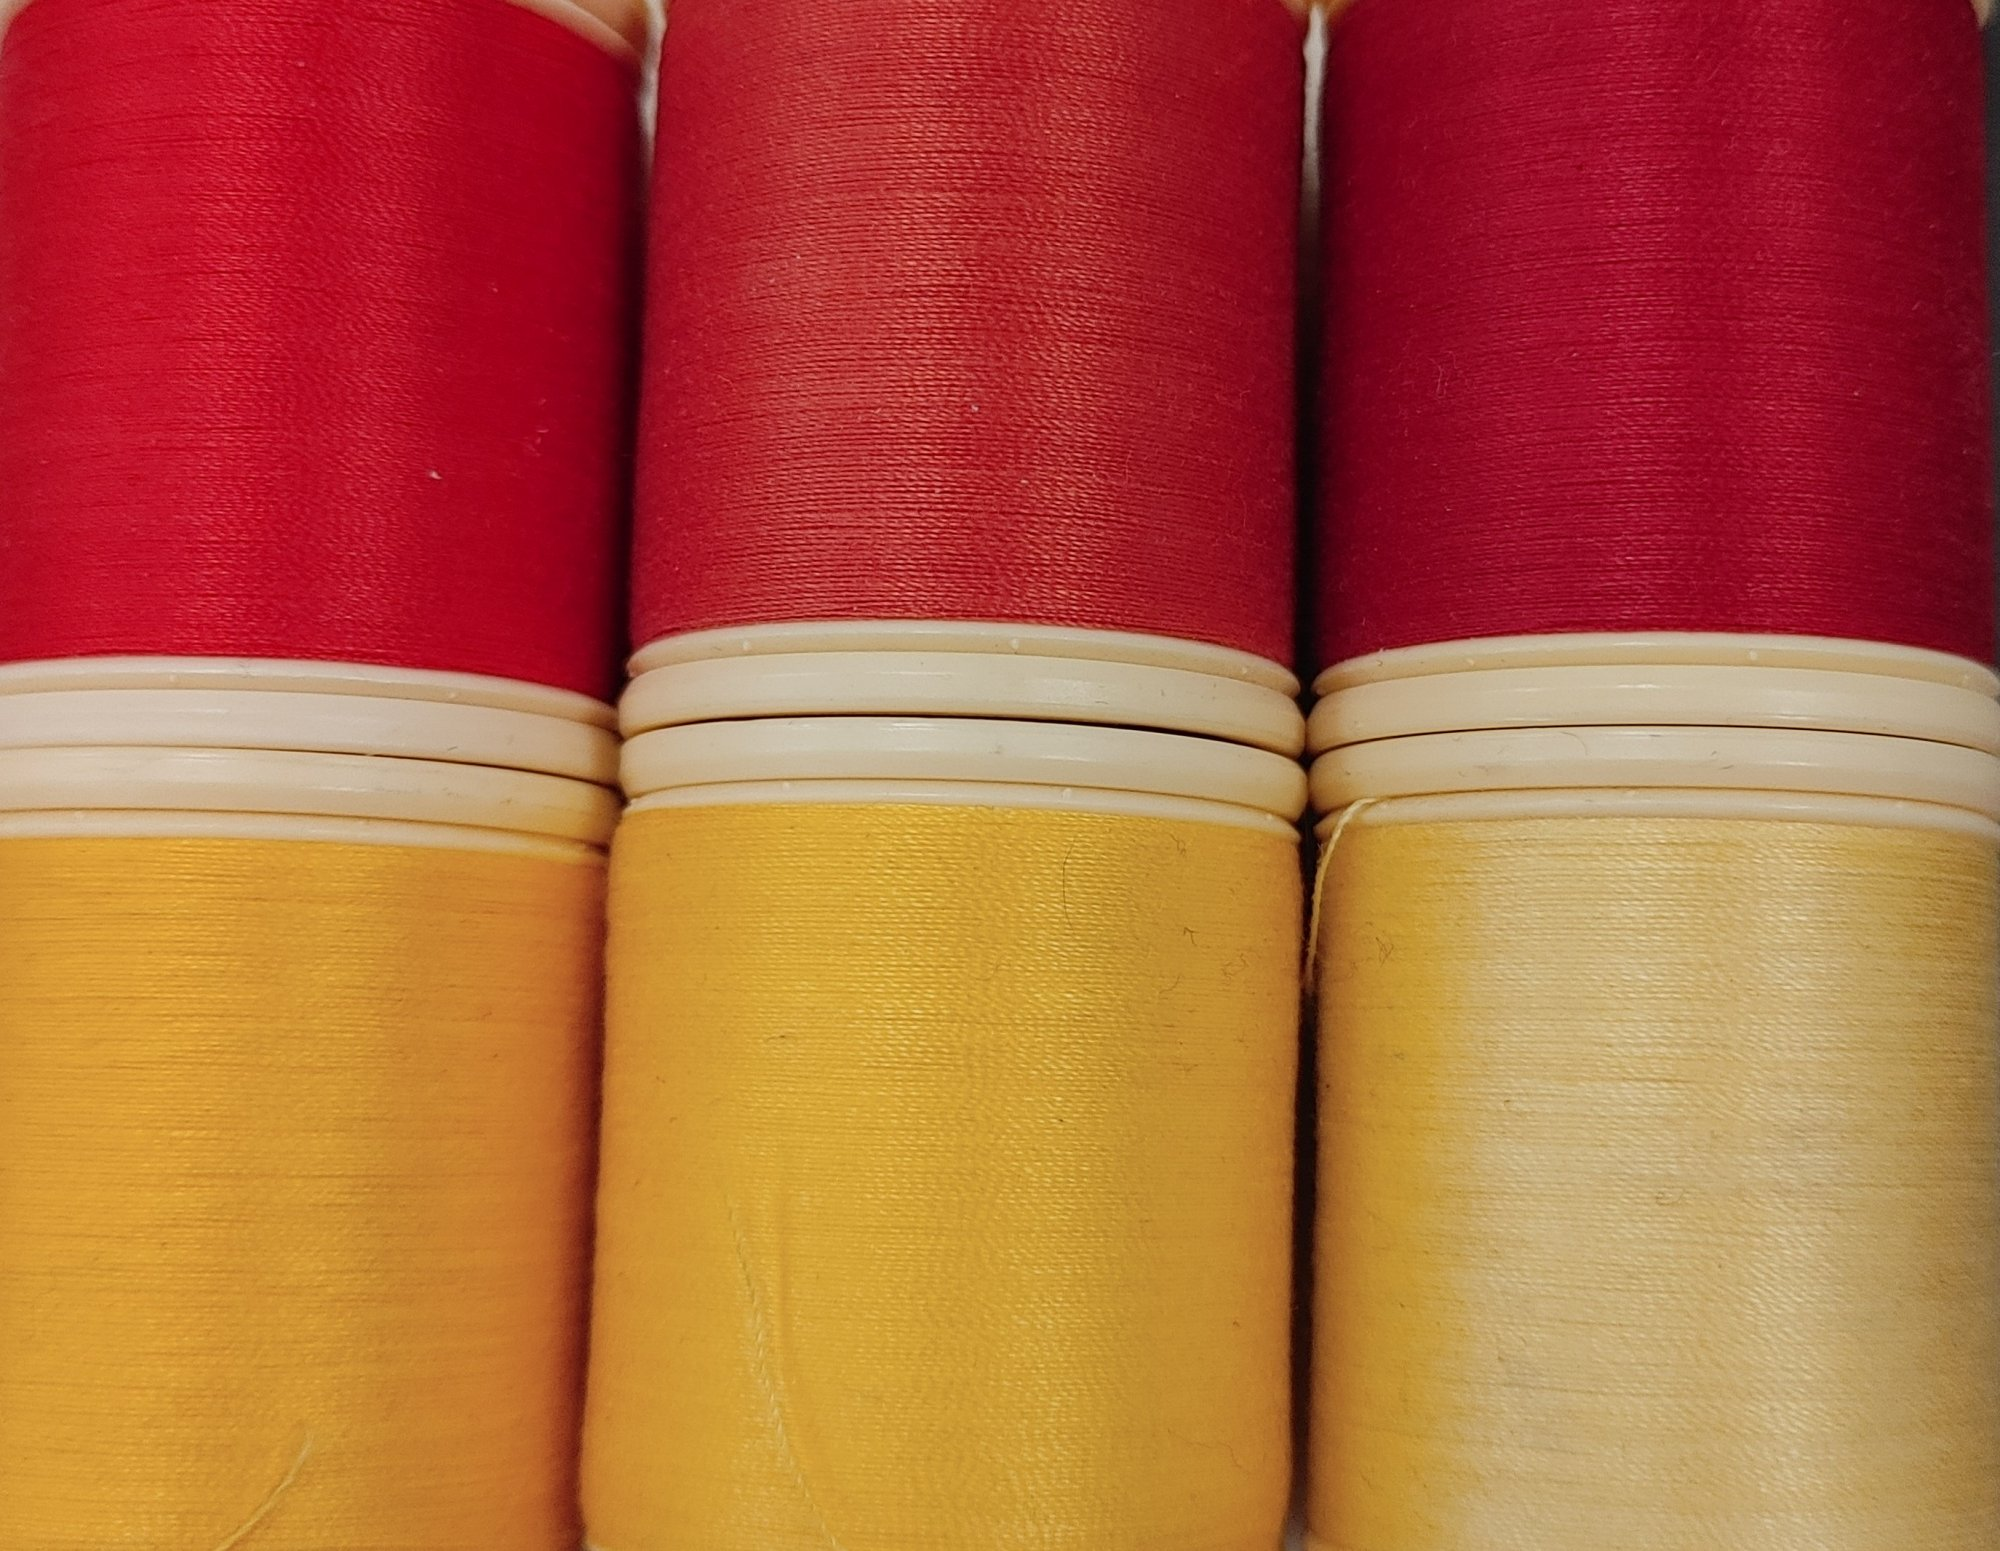 DMC Red and Yellow collection 6 spools 50 wt cotton